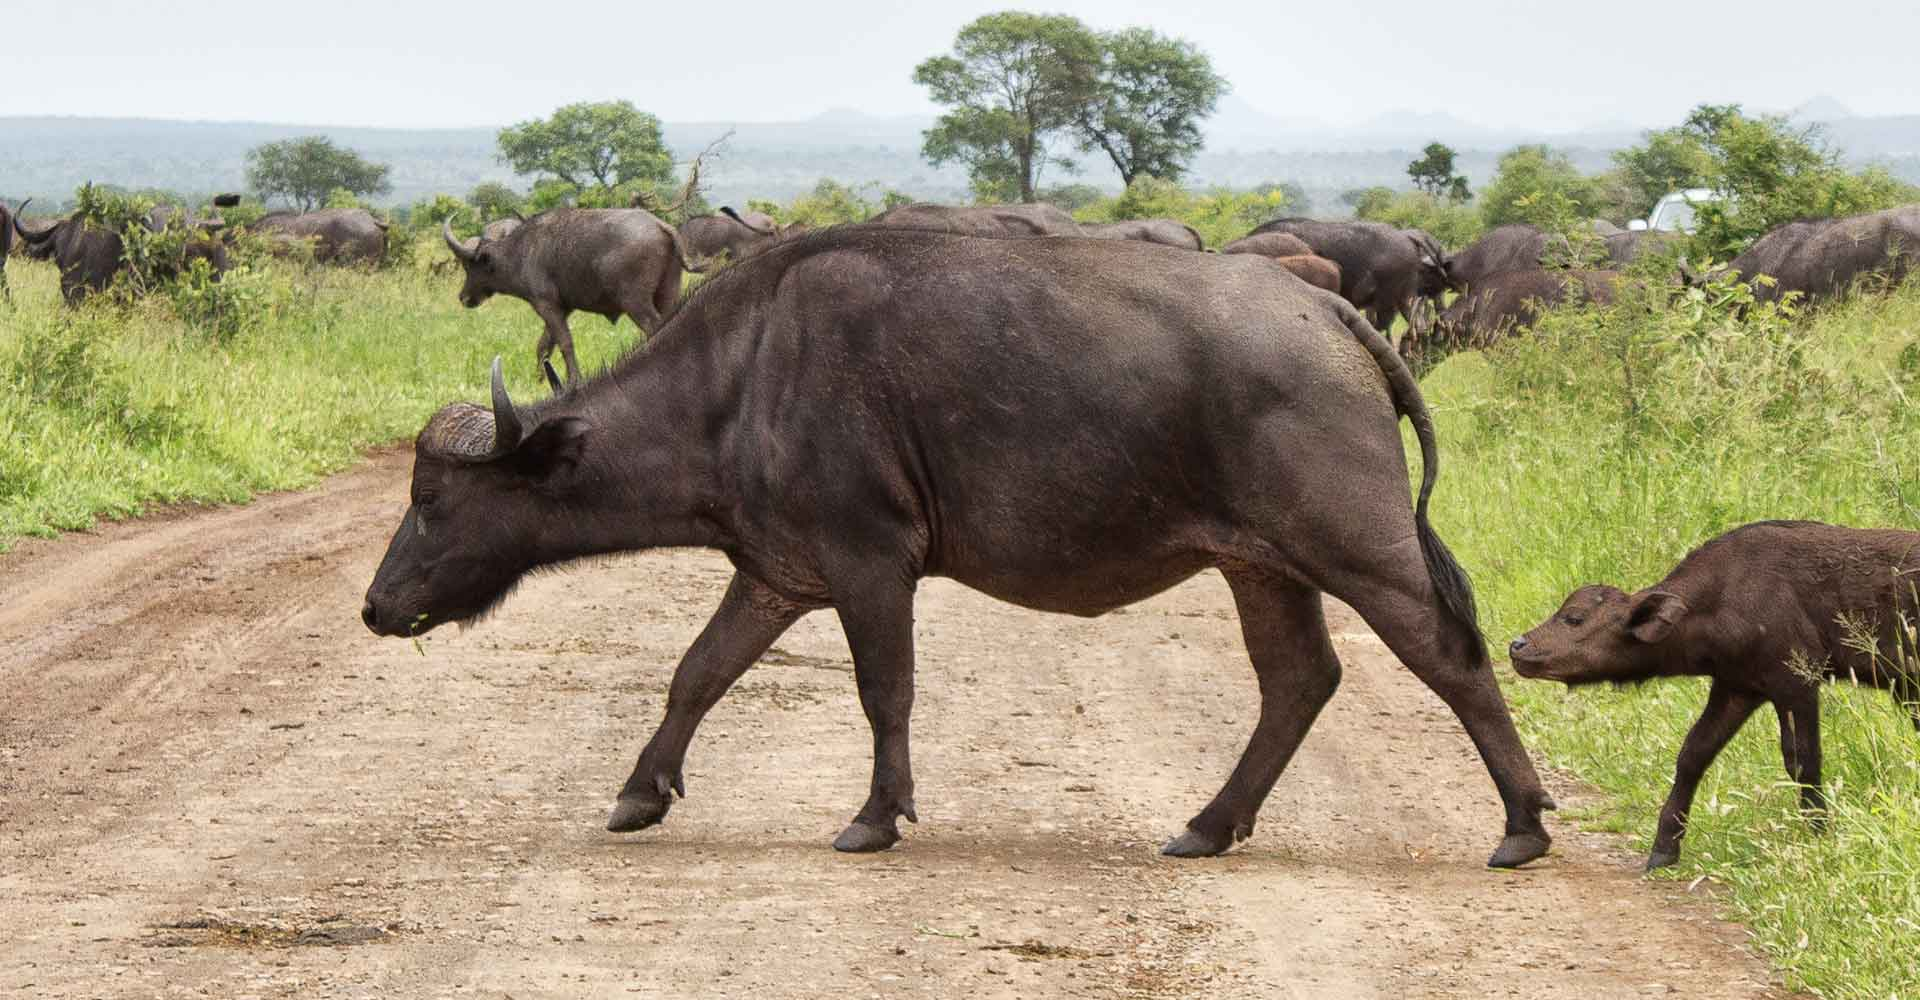 Sighting of a buffalo herd in kruger park during a day trip from maputo with Mabeco tours